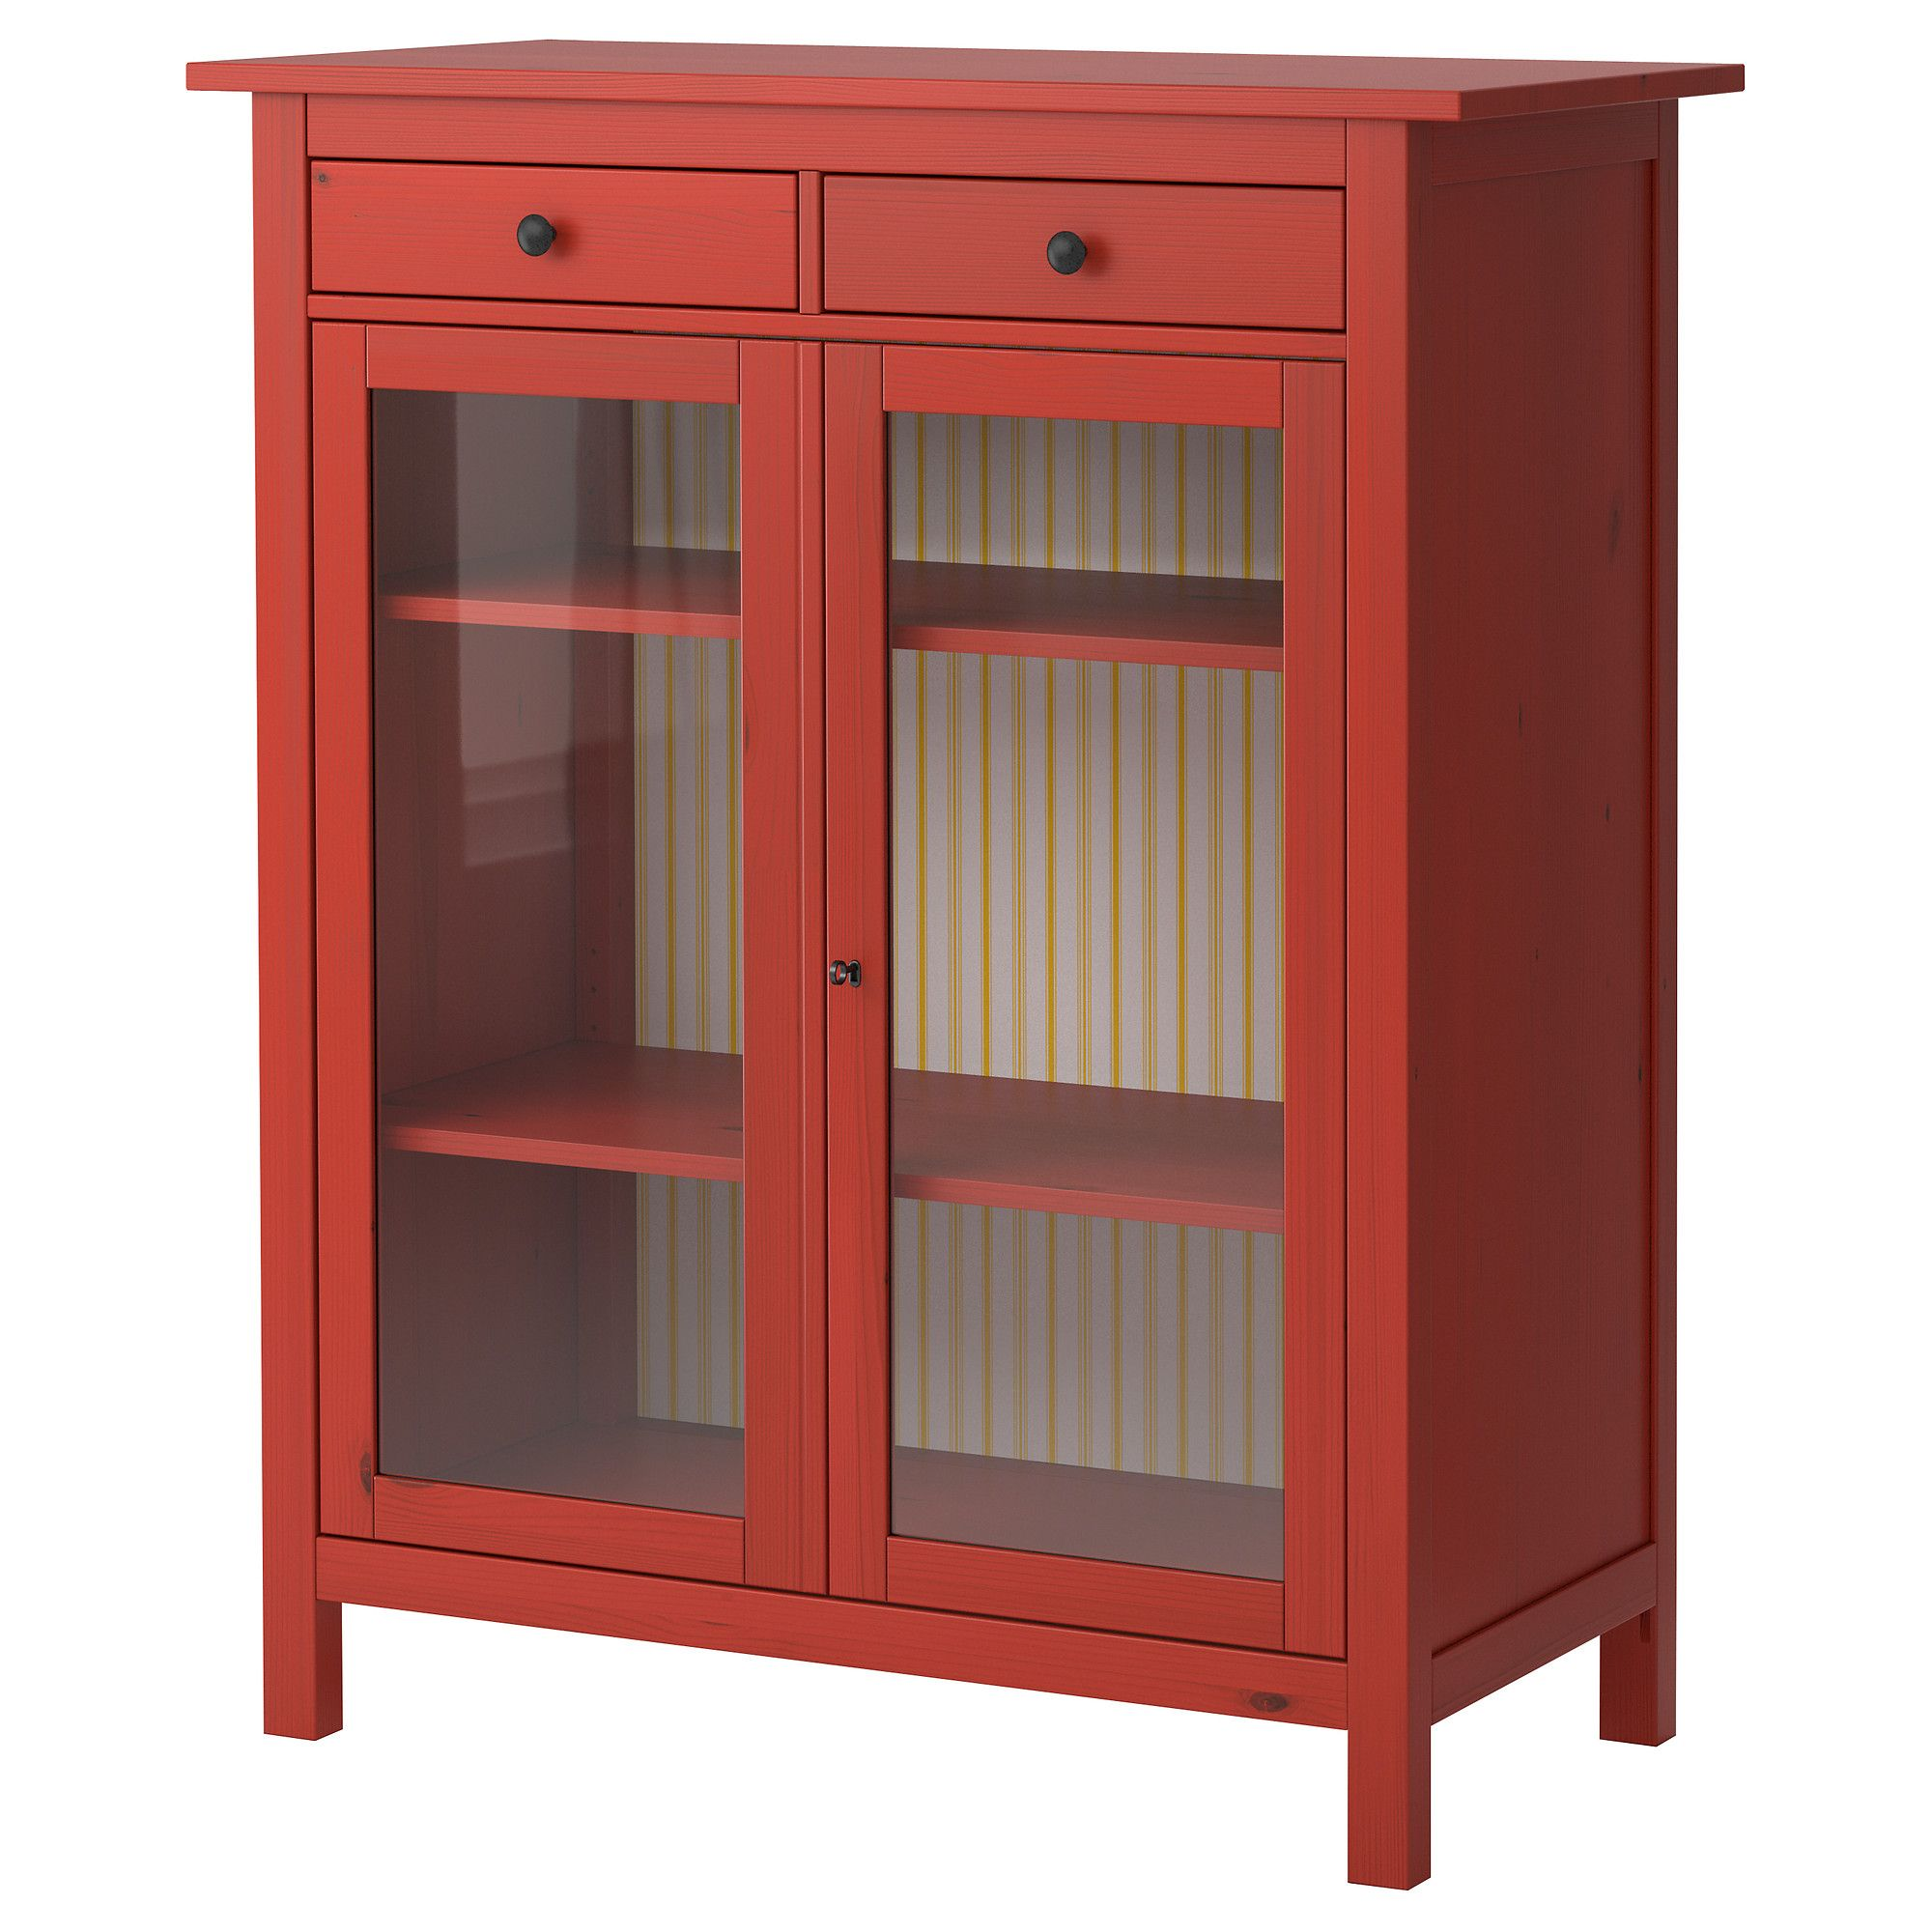 Ikea bookcase with glass doors  HEMNES Linen cabinet  IKEA  Island Changes  Pinterest  Linen